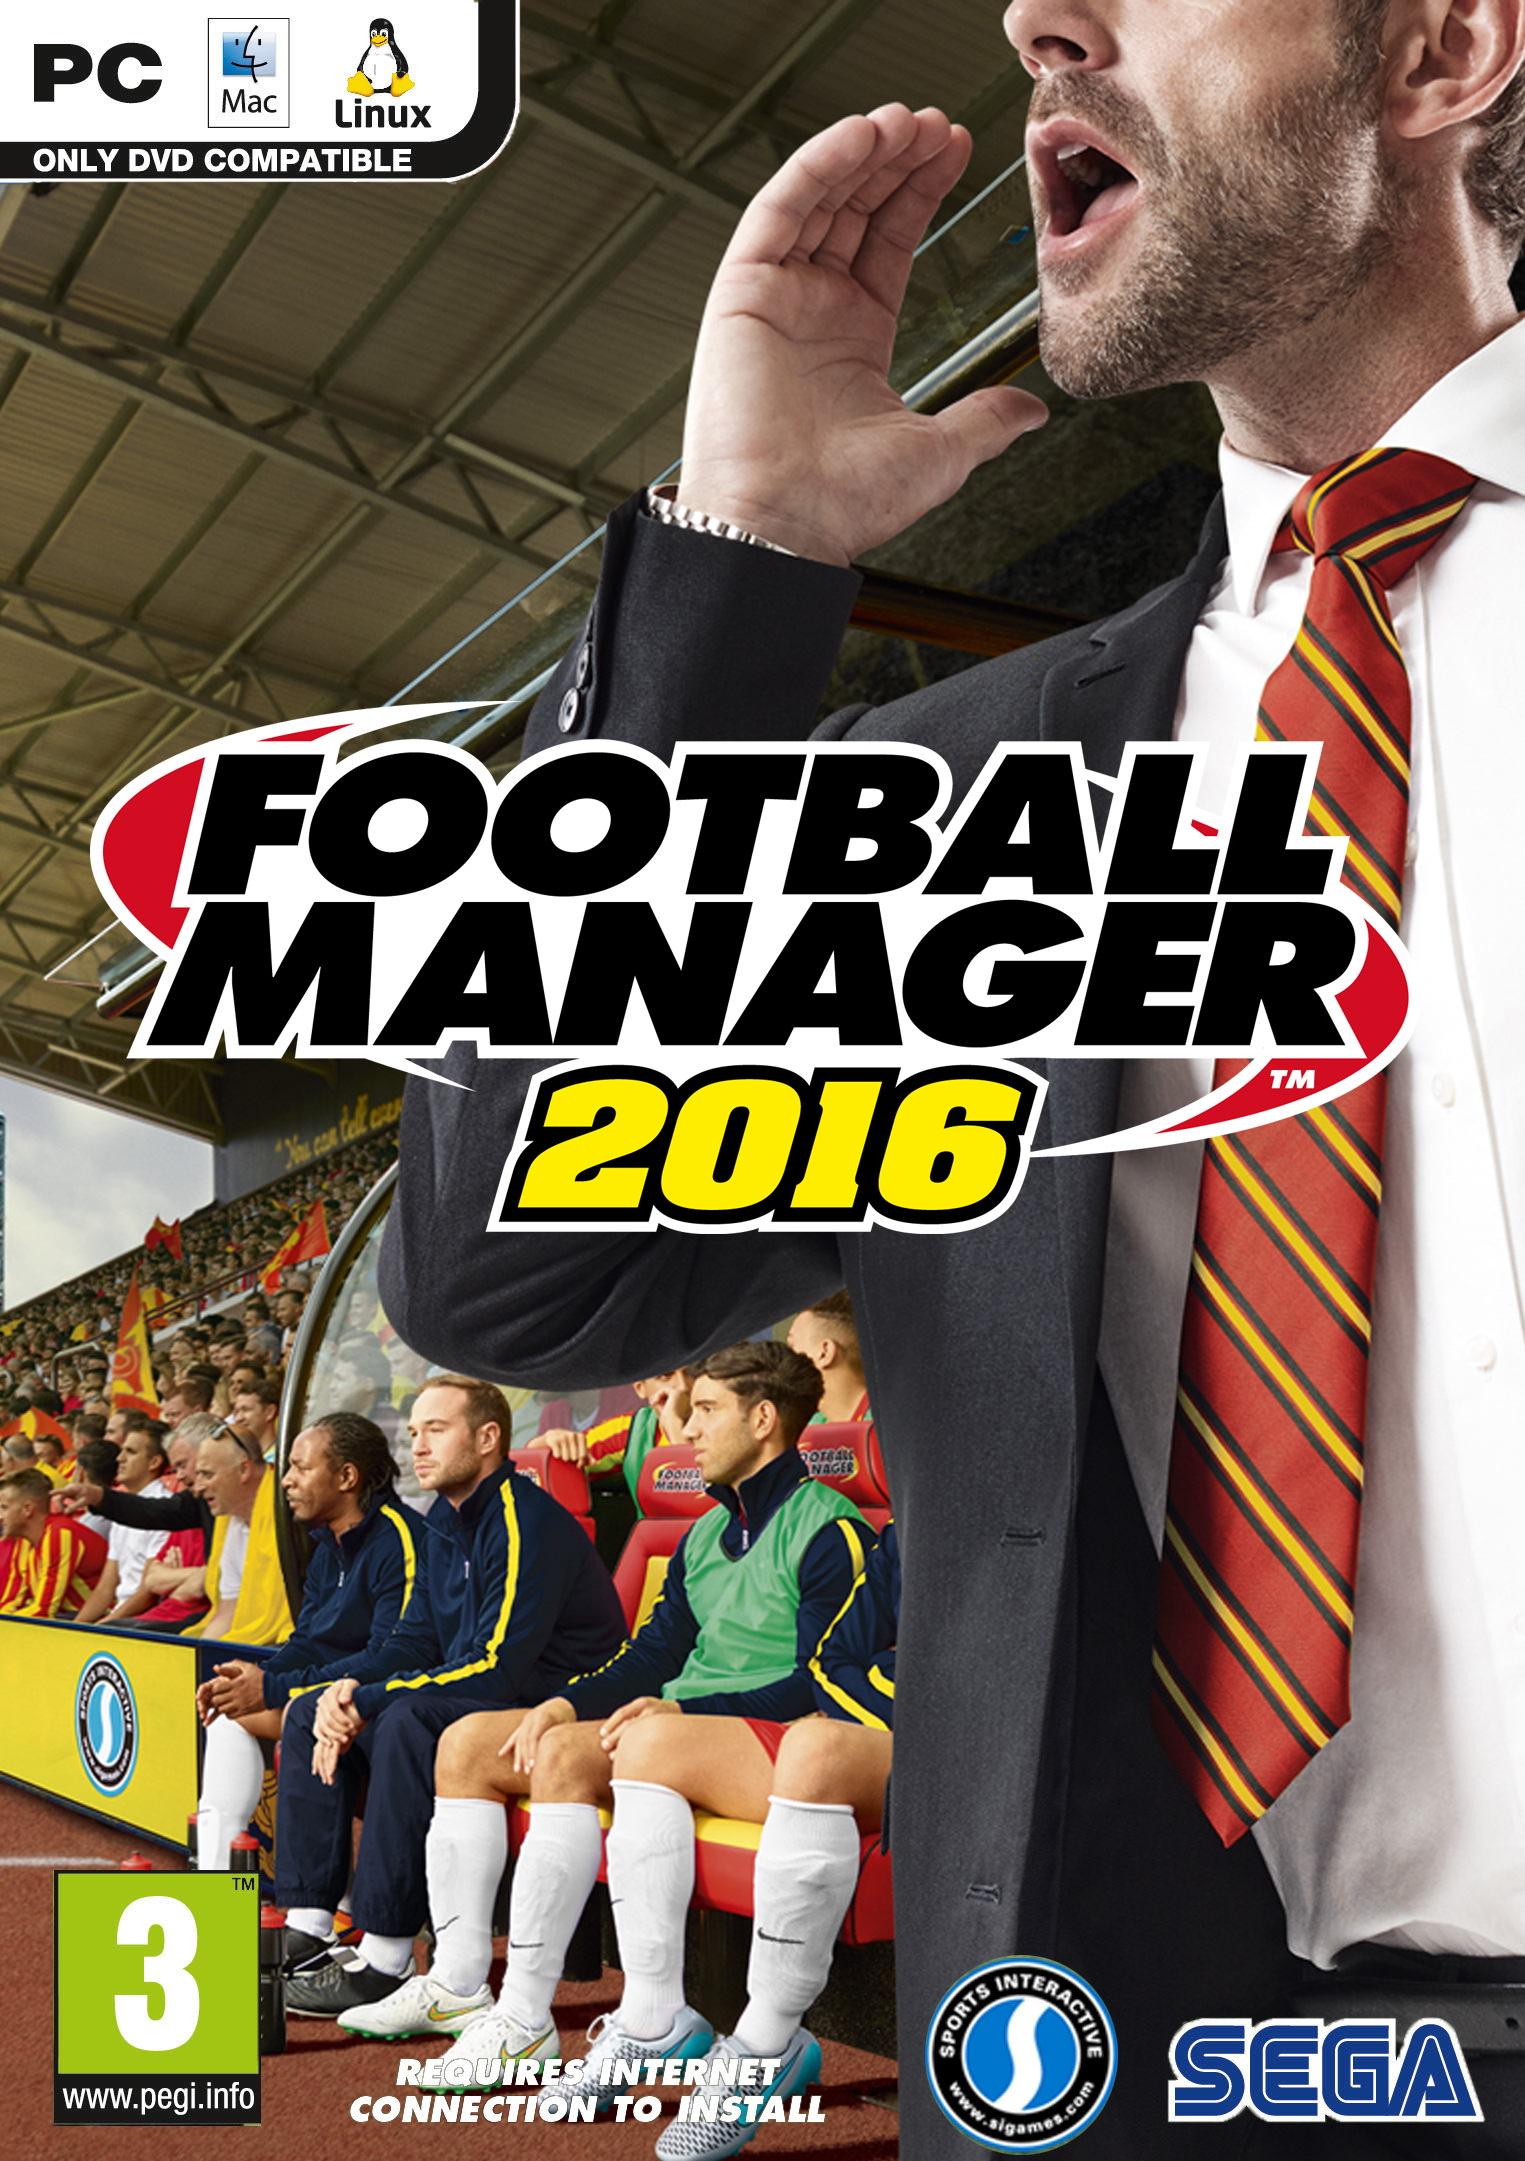 Football Manager 2016 picture